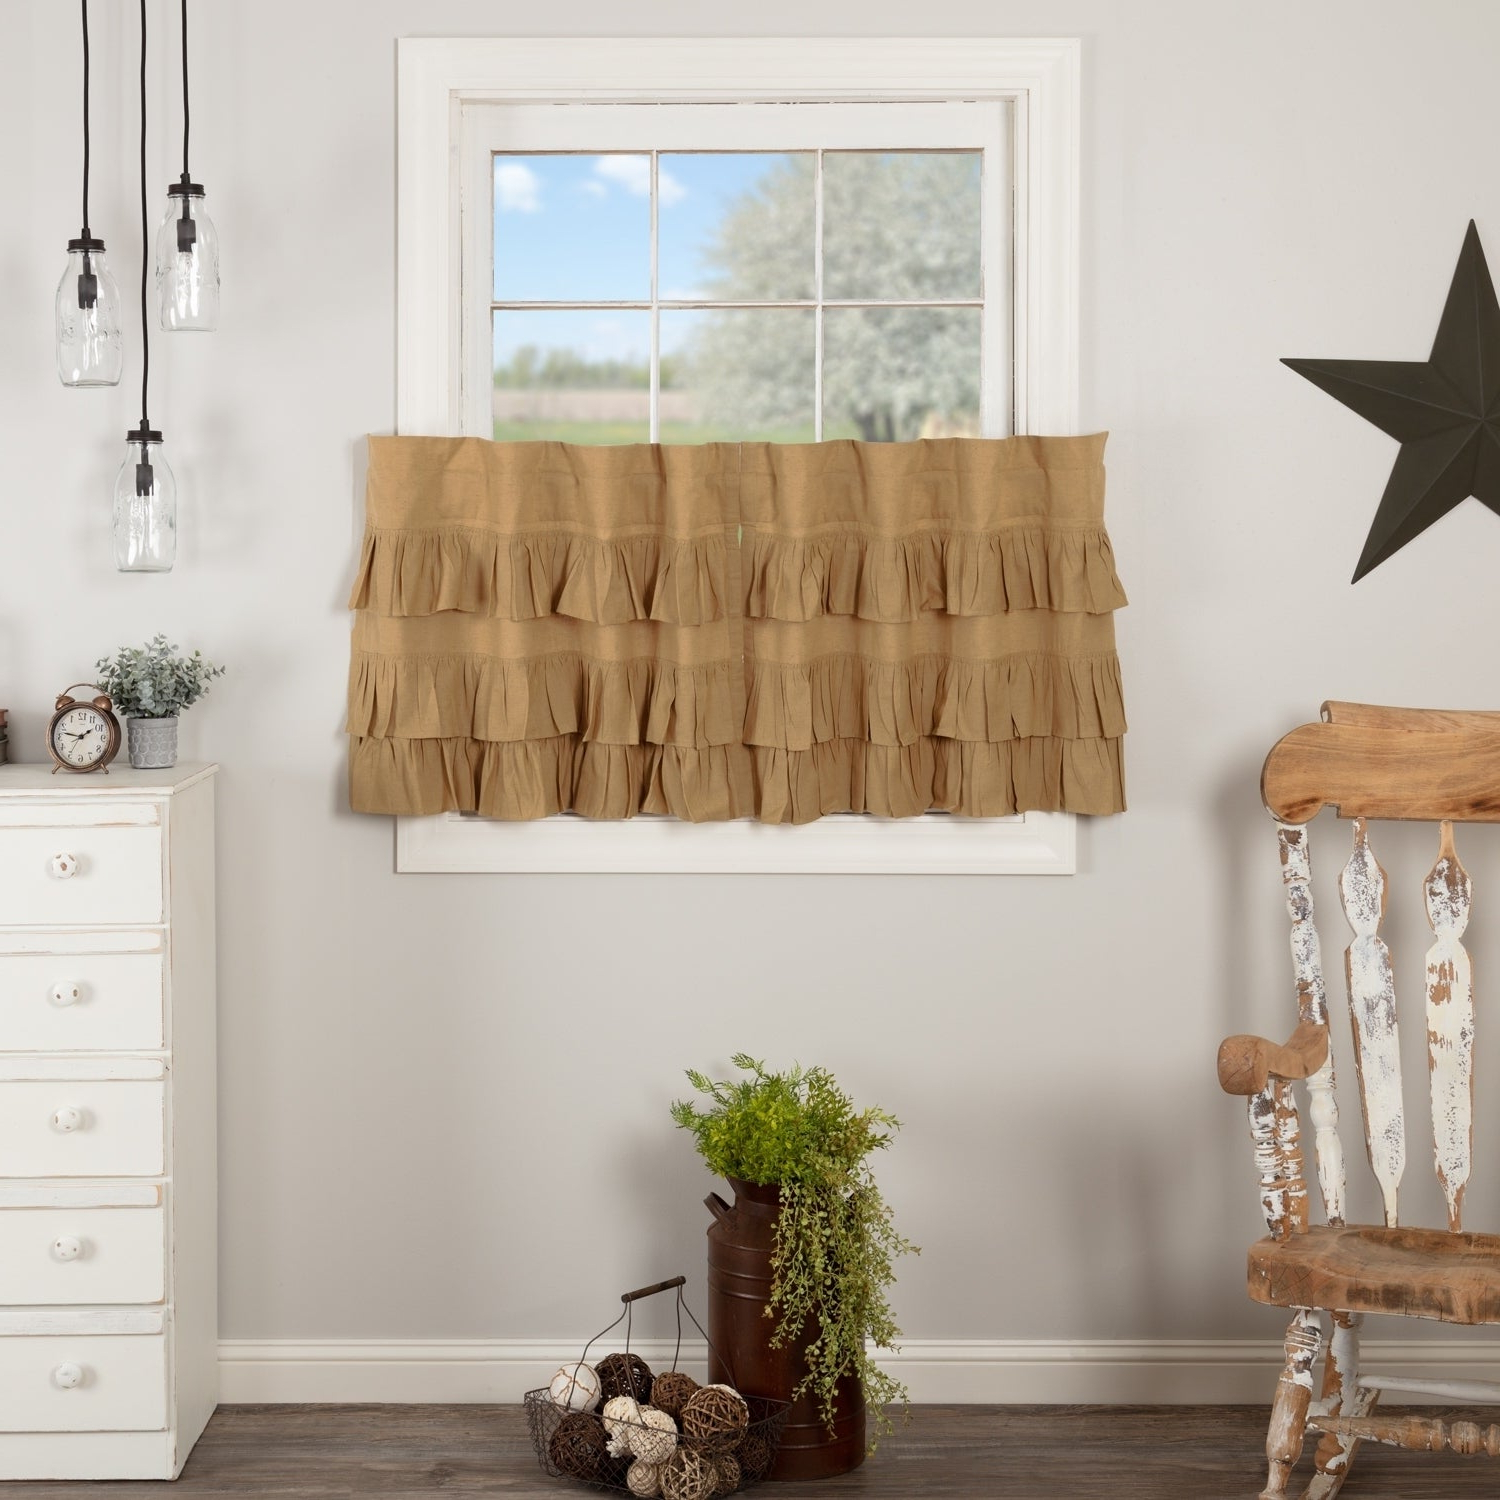 Most Recent Rod Pocket Cotton Linen Blend Solid Color Flax Kitchen Curtains Regarding Farmhouse Kitchen Curtains Vhc Simple Life Flax Tier Pair Rod Pocket Cotton  Linen Blend Solid Color Flax (Gallery 4 of 20)